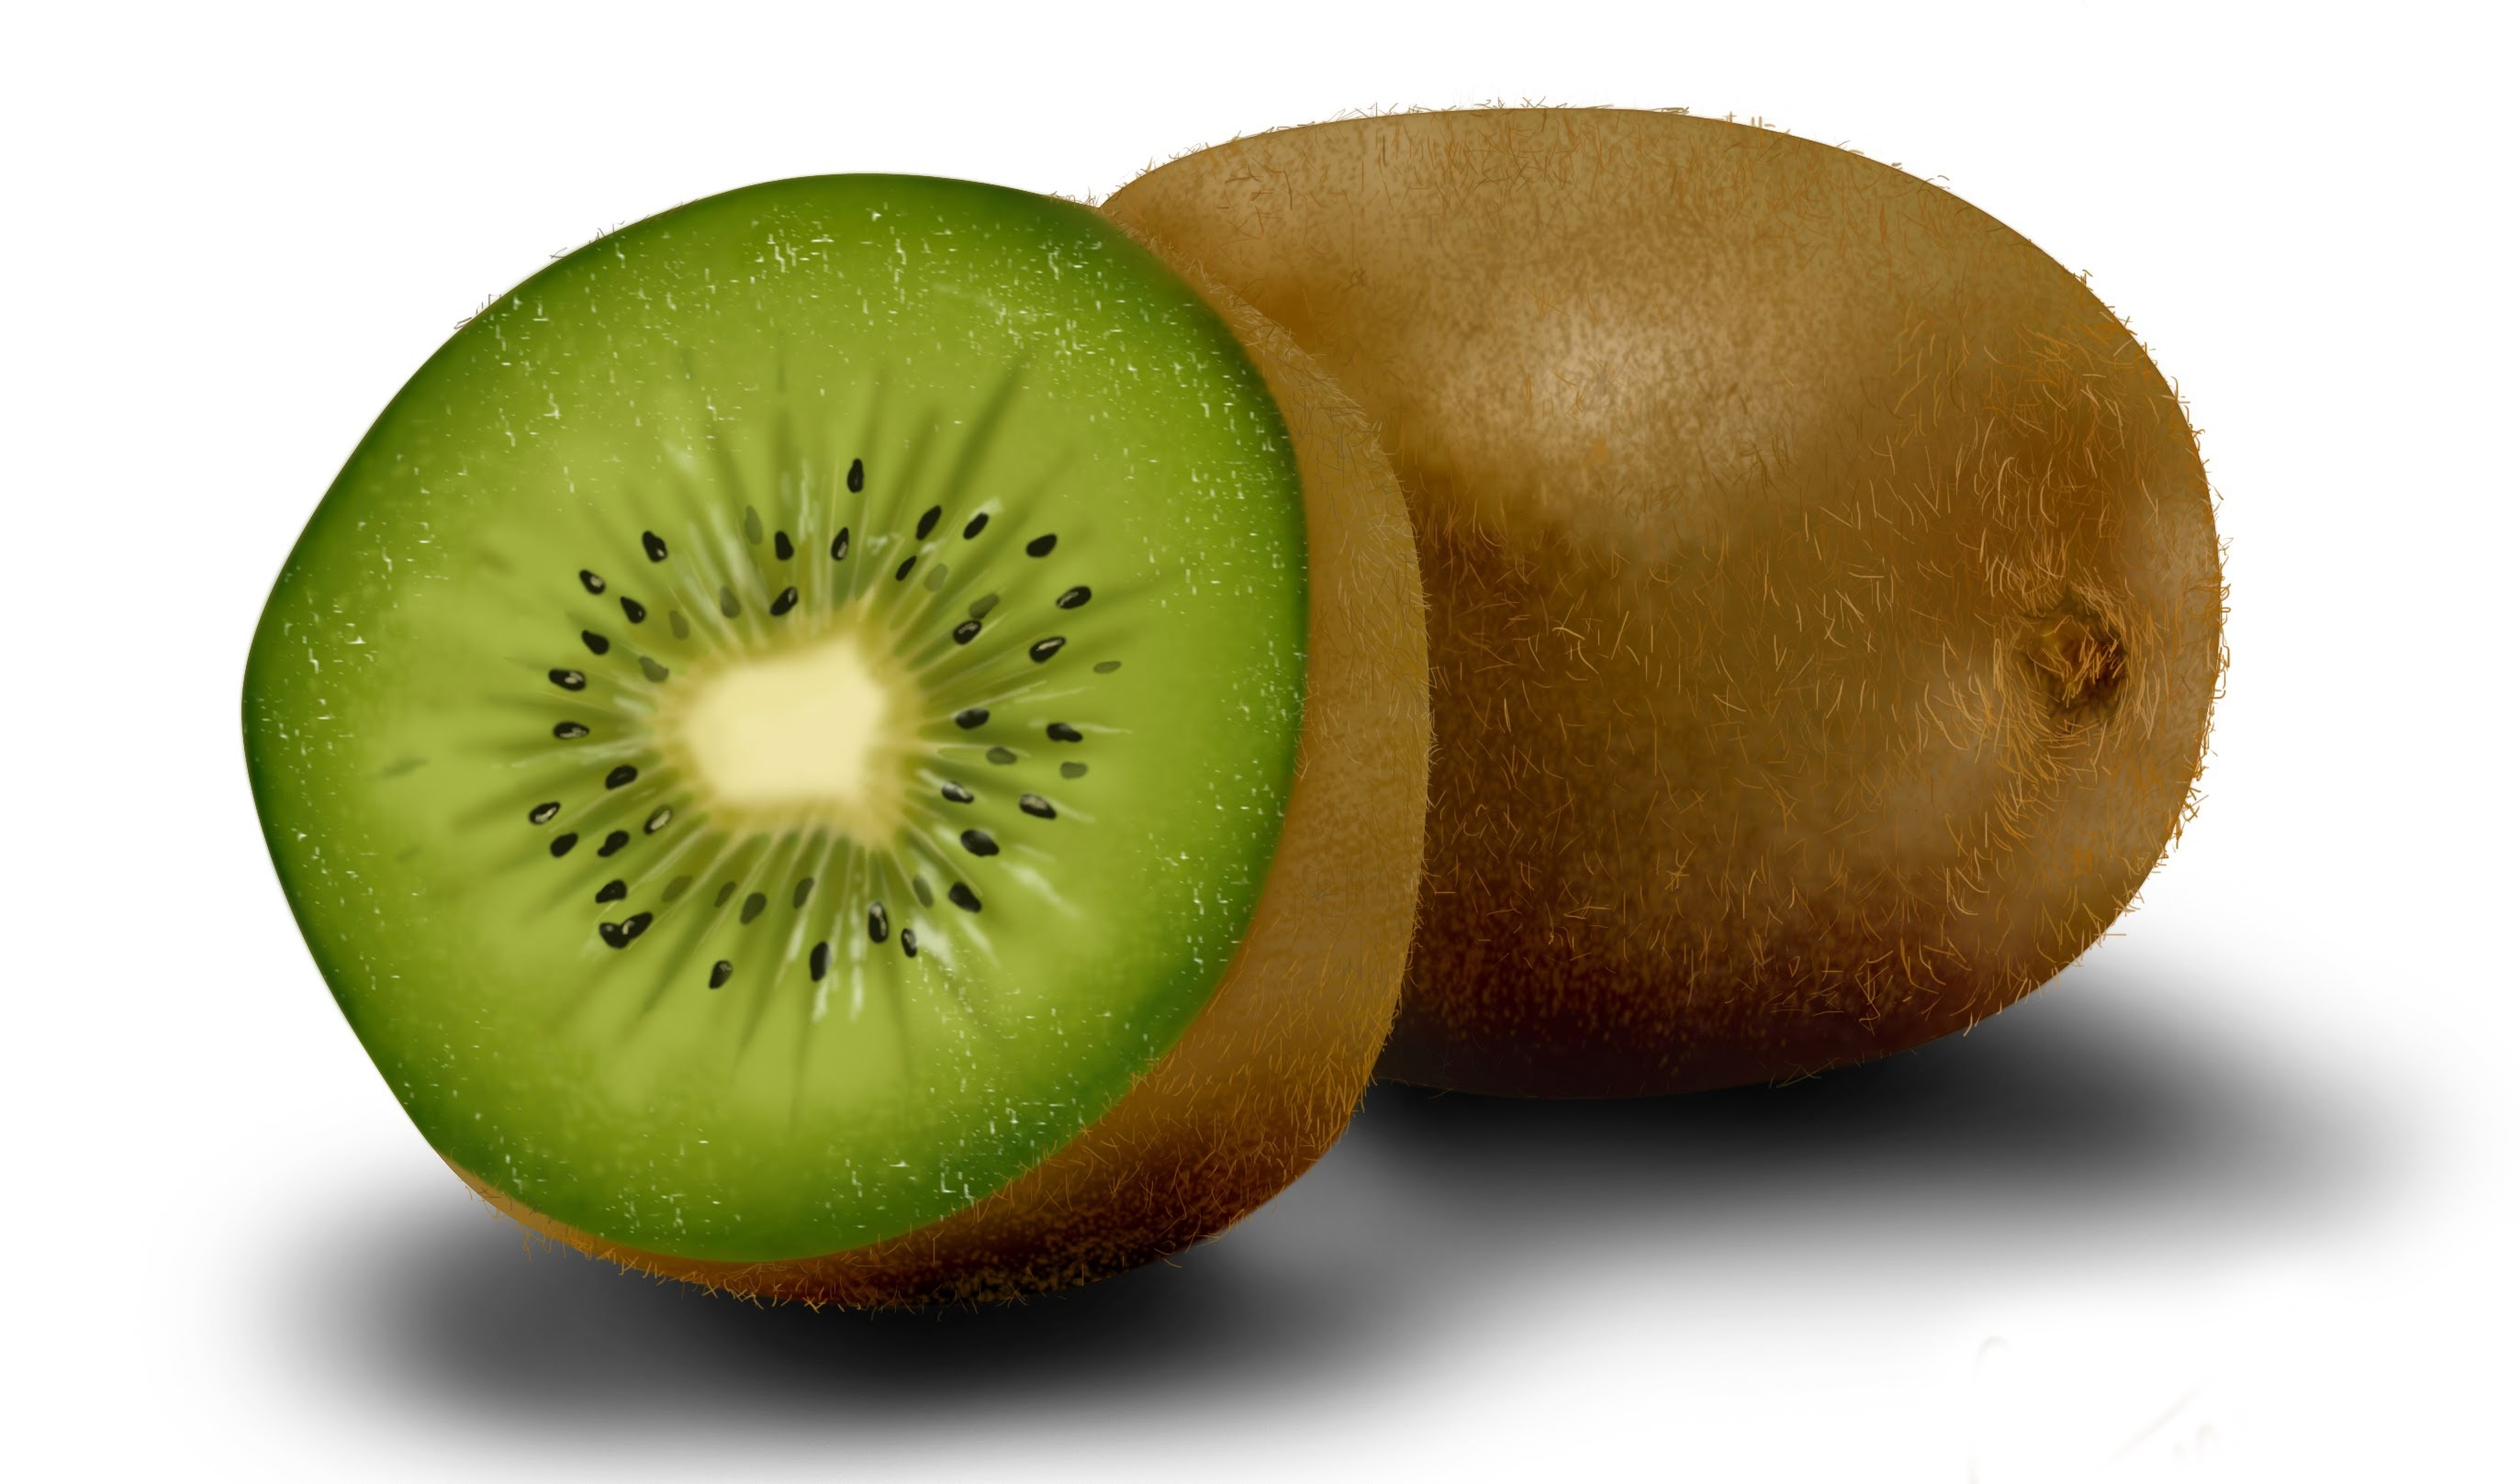 2745x1617 How To Draw The Realistic Kiwi Fruit